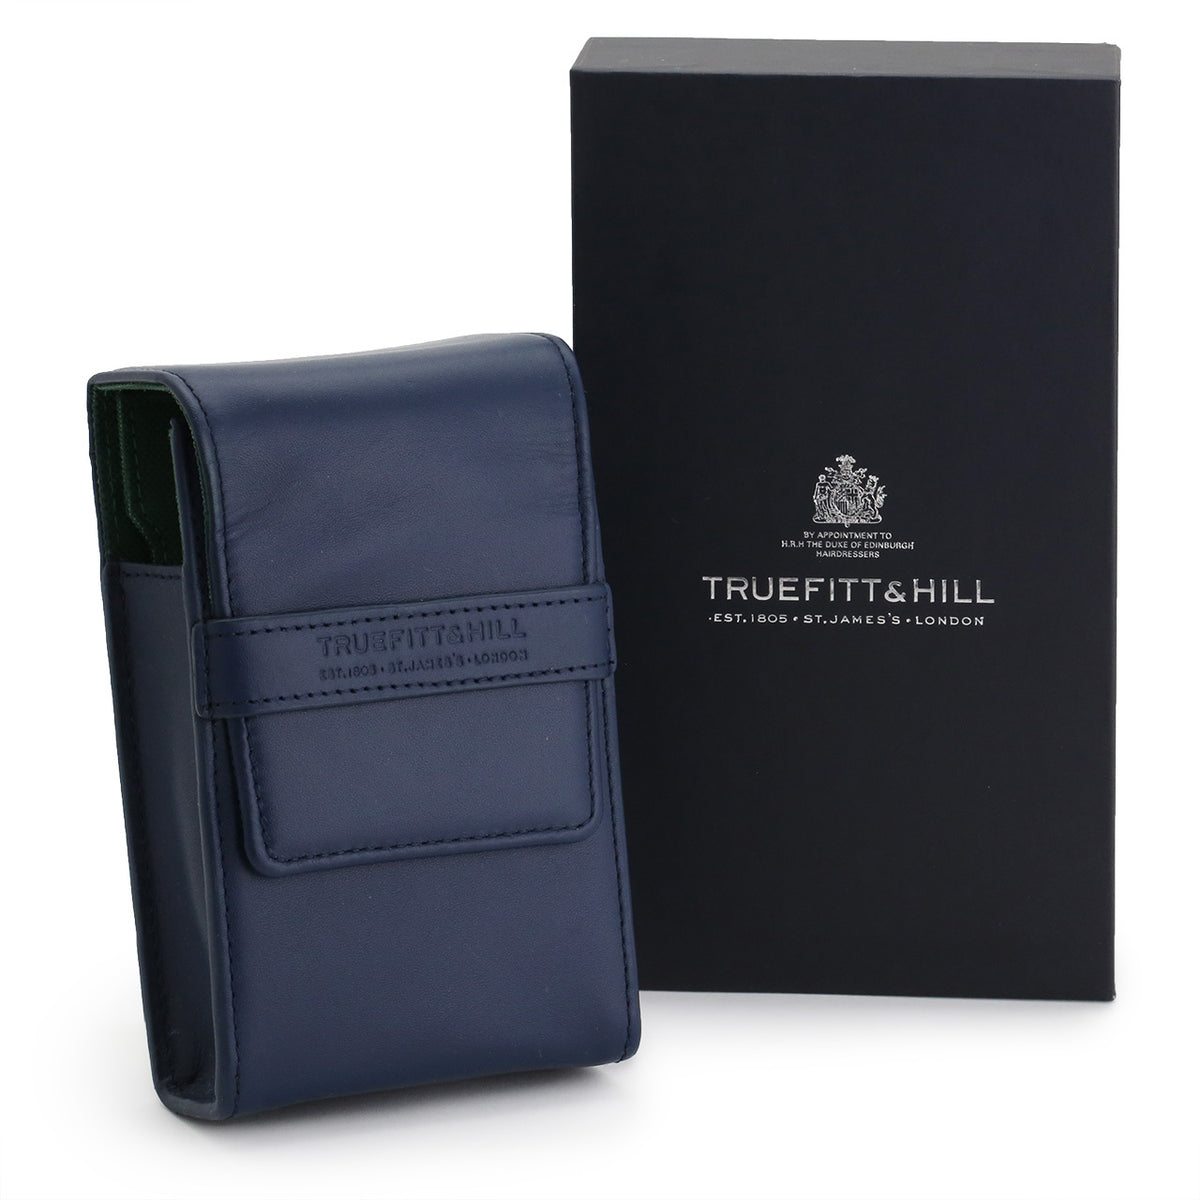 Truefitt & Hill Razor and Brush Travel Set Holder - Navy